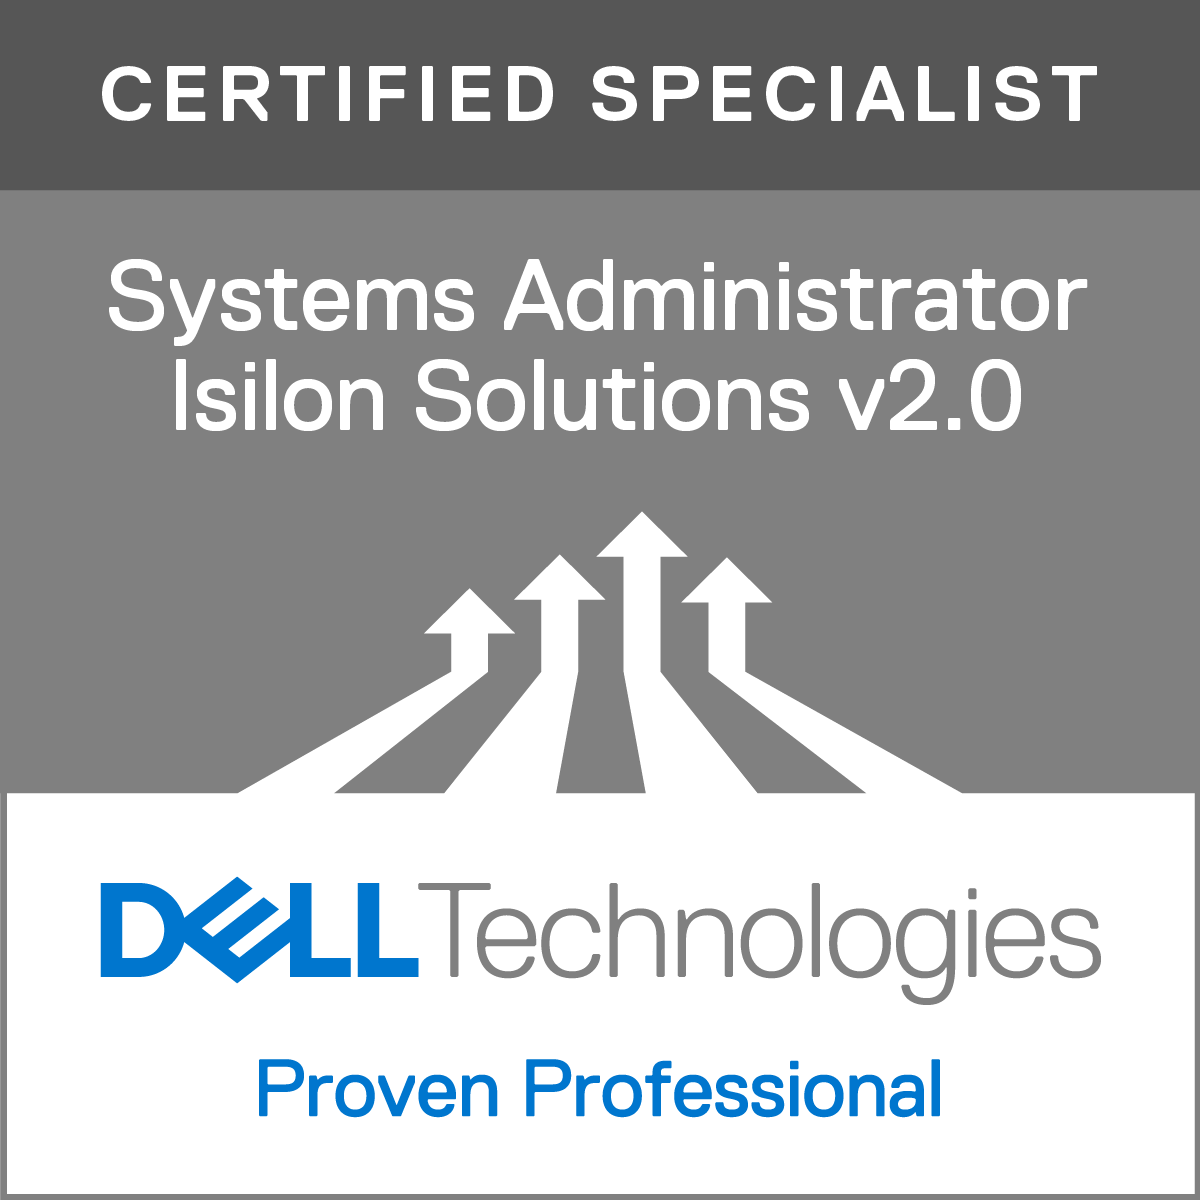 Specialist - Systems Administrator, Isilon Solutions Version 2.0